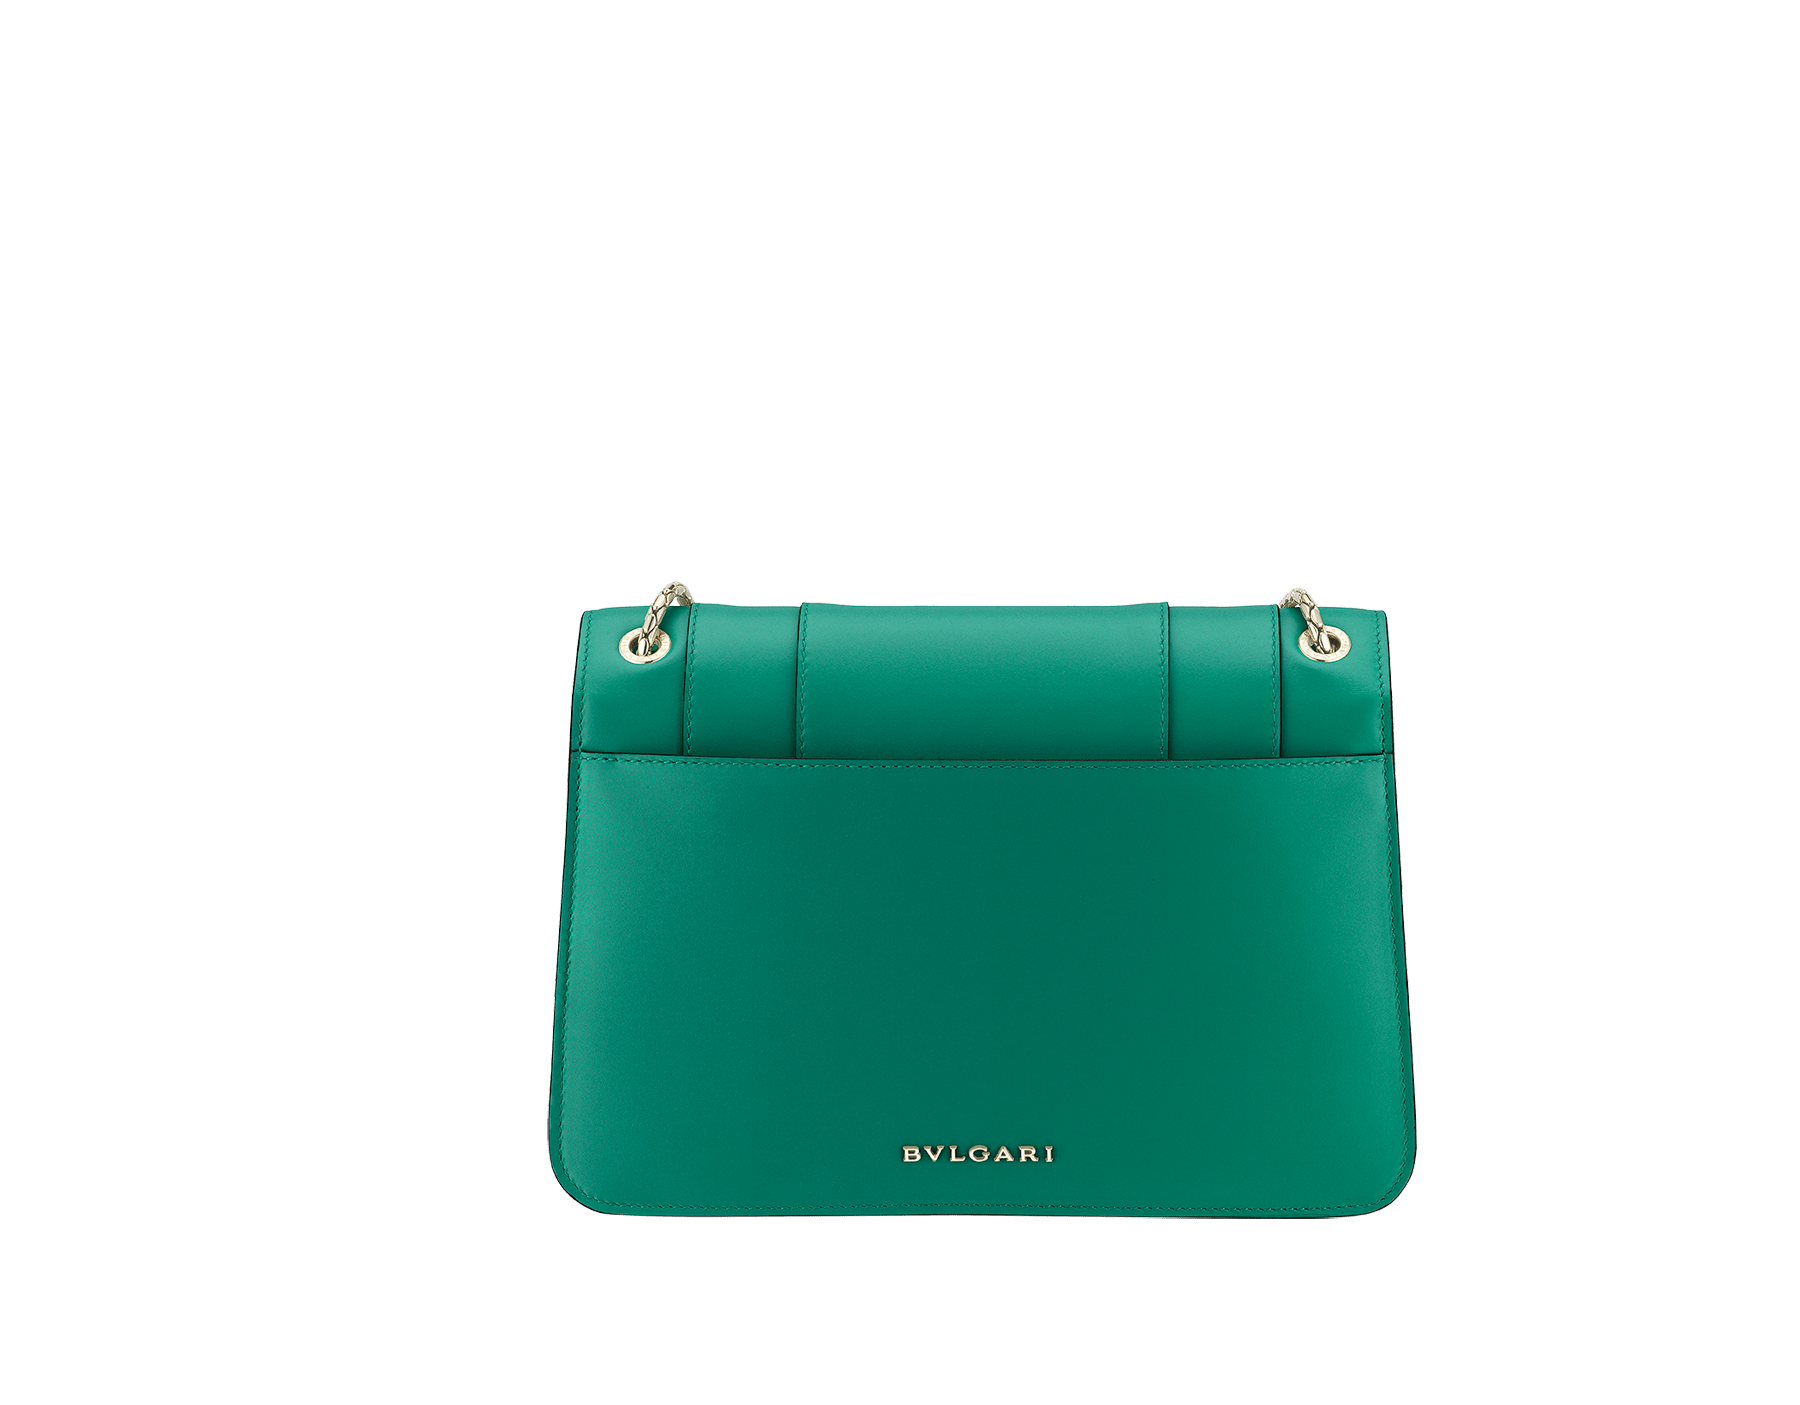 """Serpenti Forever"" shoulder bag in black calf leather. Iconic snakehead closure in light gold-plated brass enhanced with black and white agate enamel and green malachite eyes. 1077-CL image 3"